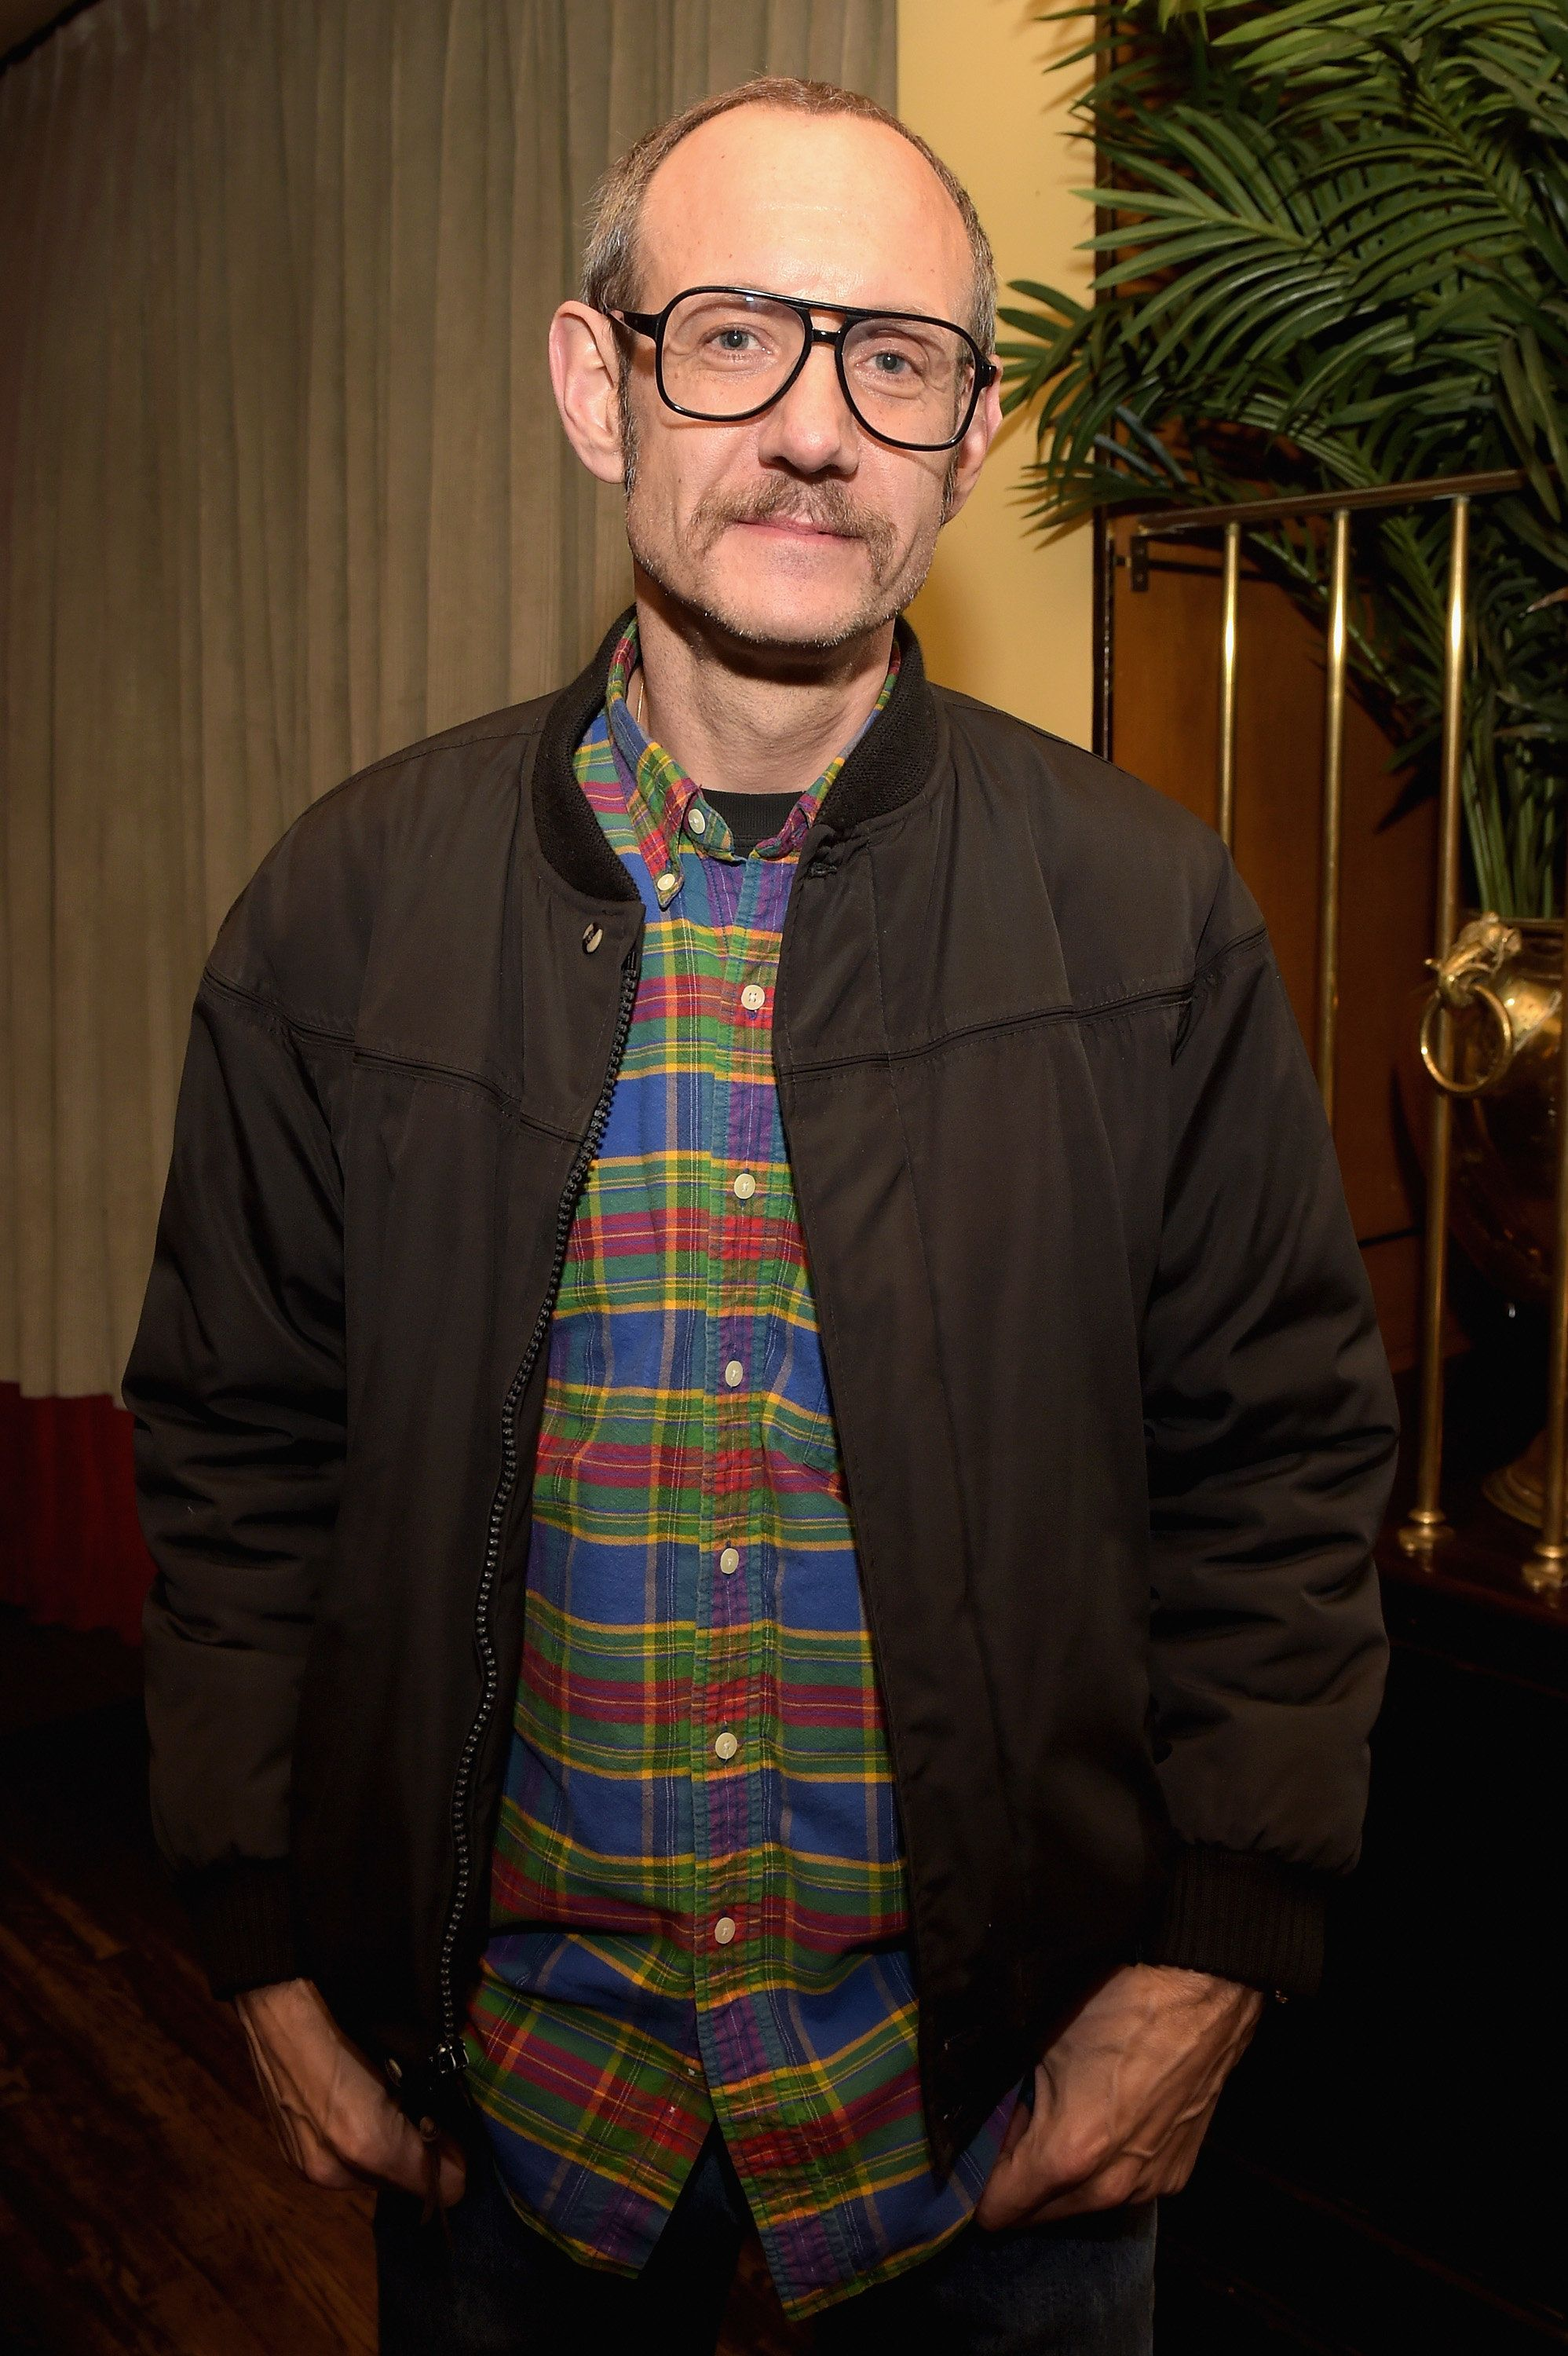 Condé Nast Bans Terry Richardson -- Years After Harassment